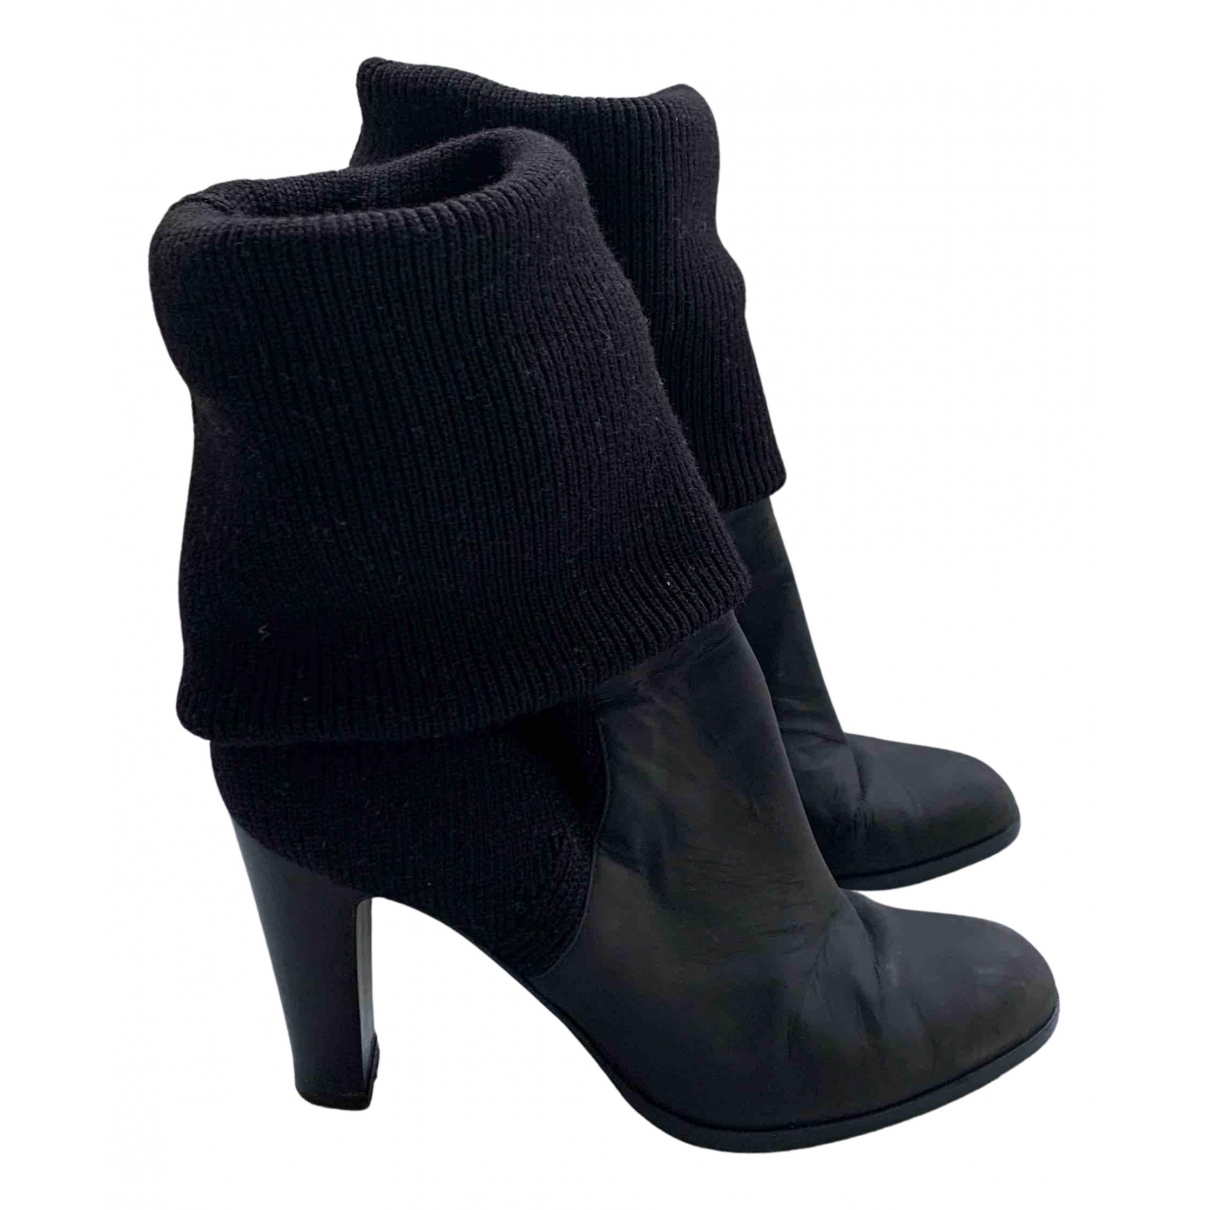 Sergio Rossi N Black Leather Ankle boots for Women 39 EU